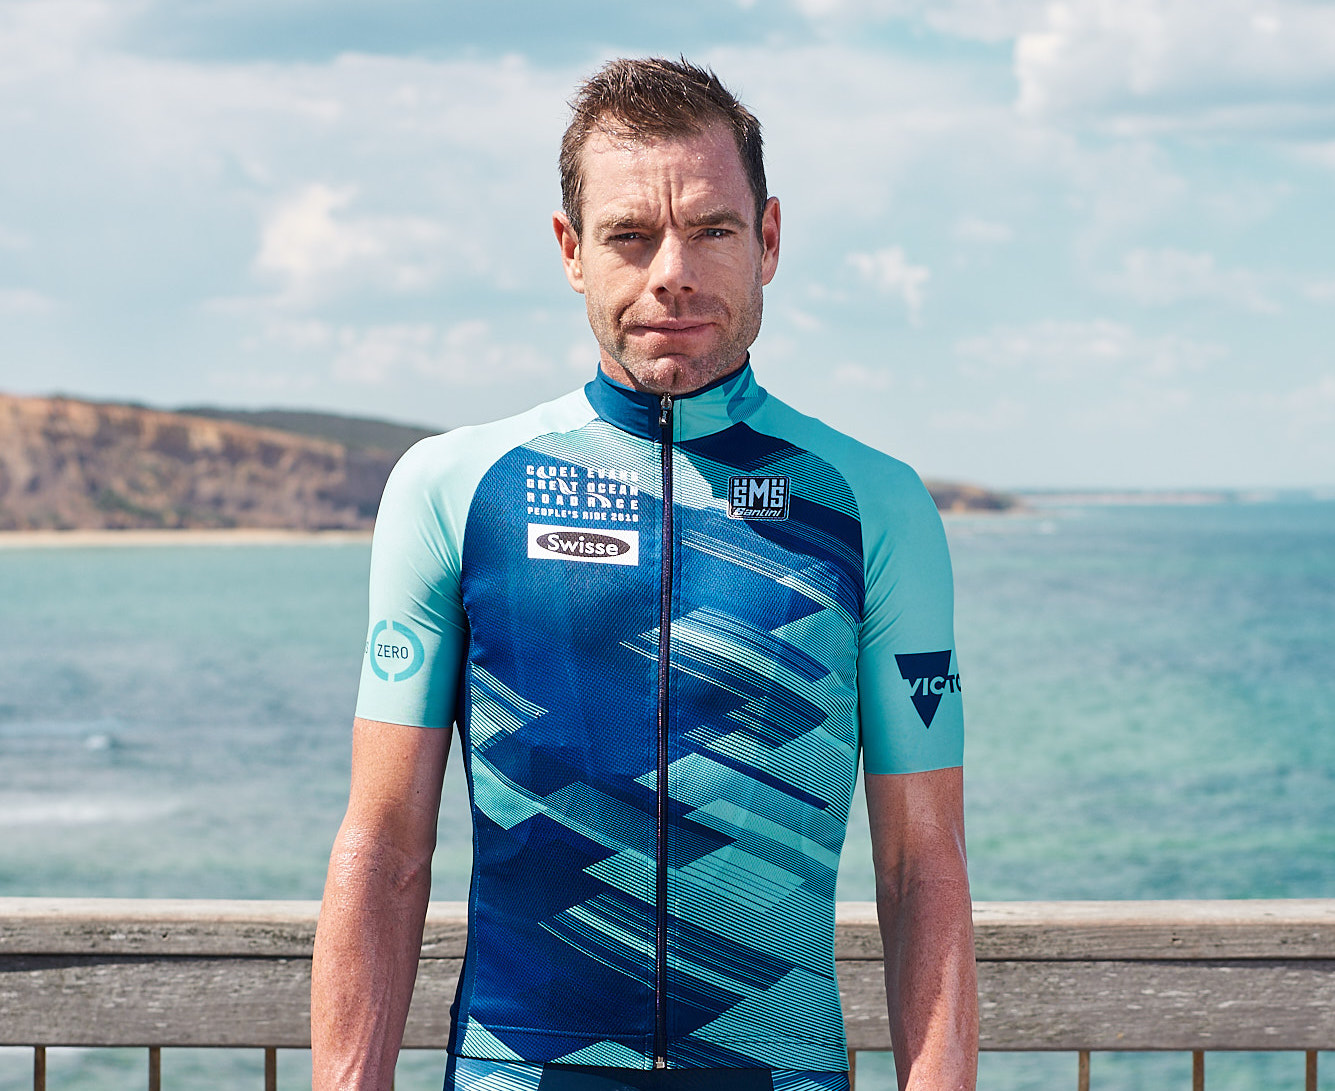 69889388c New Swisse People s Ride kit now available - Cadel Evans Great Ocean ...